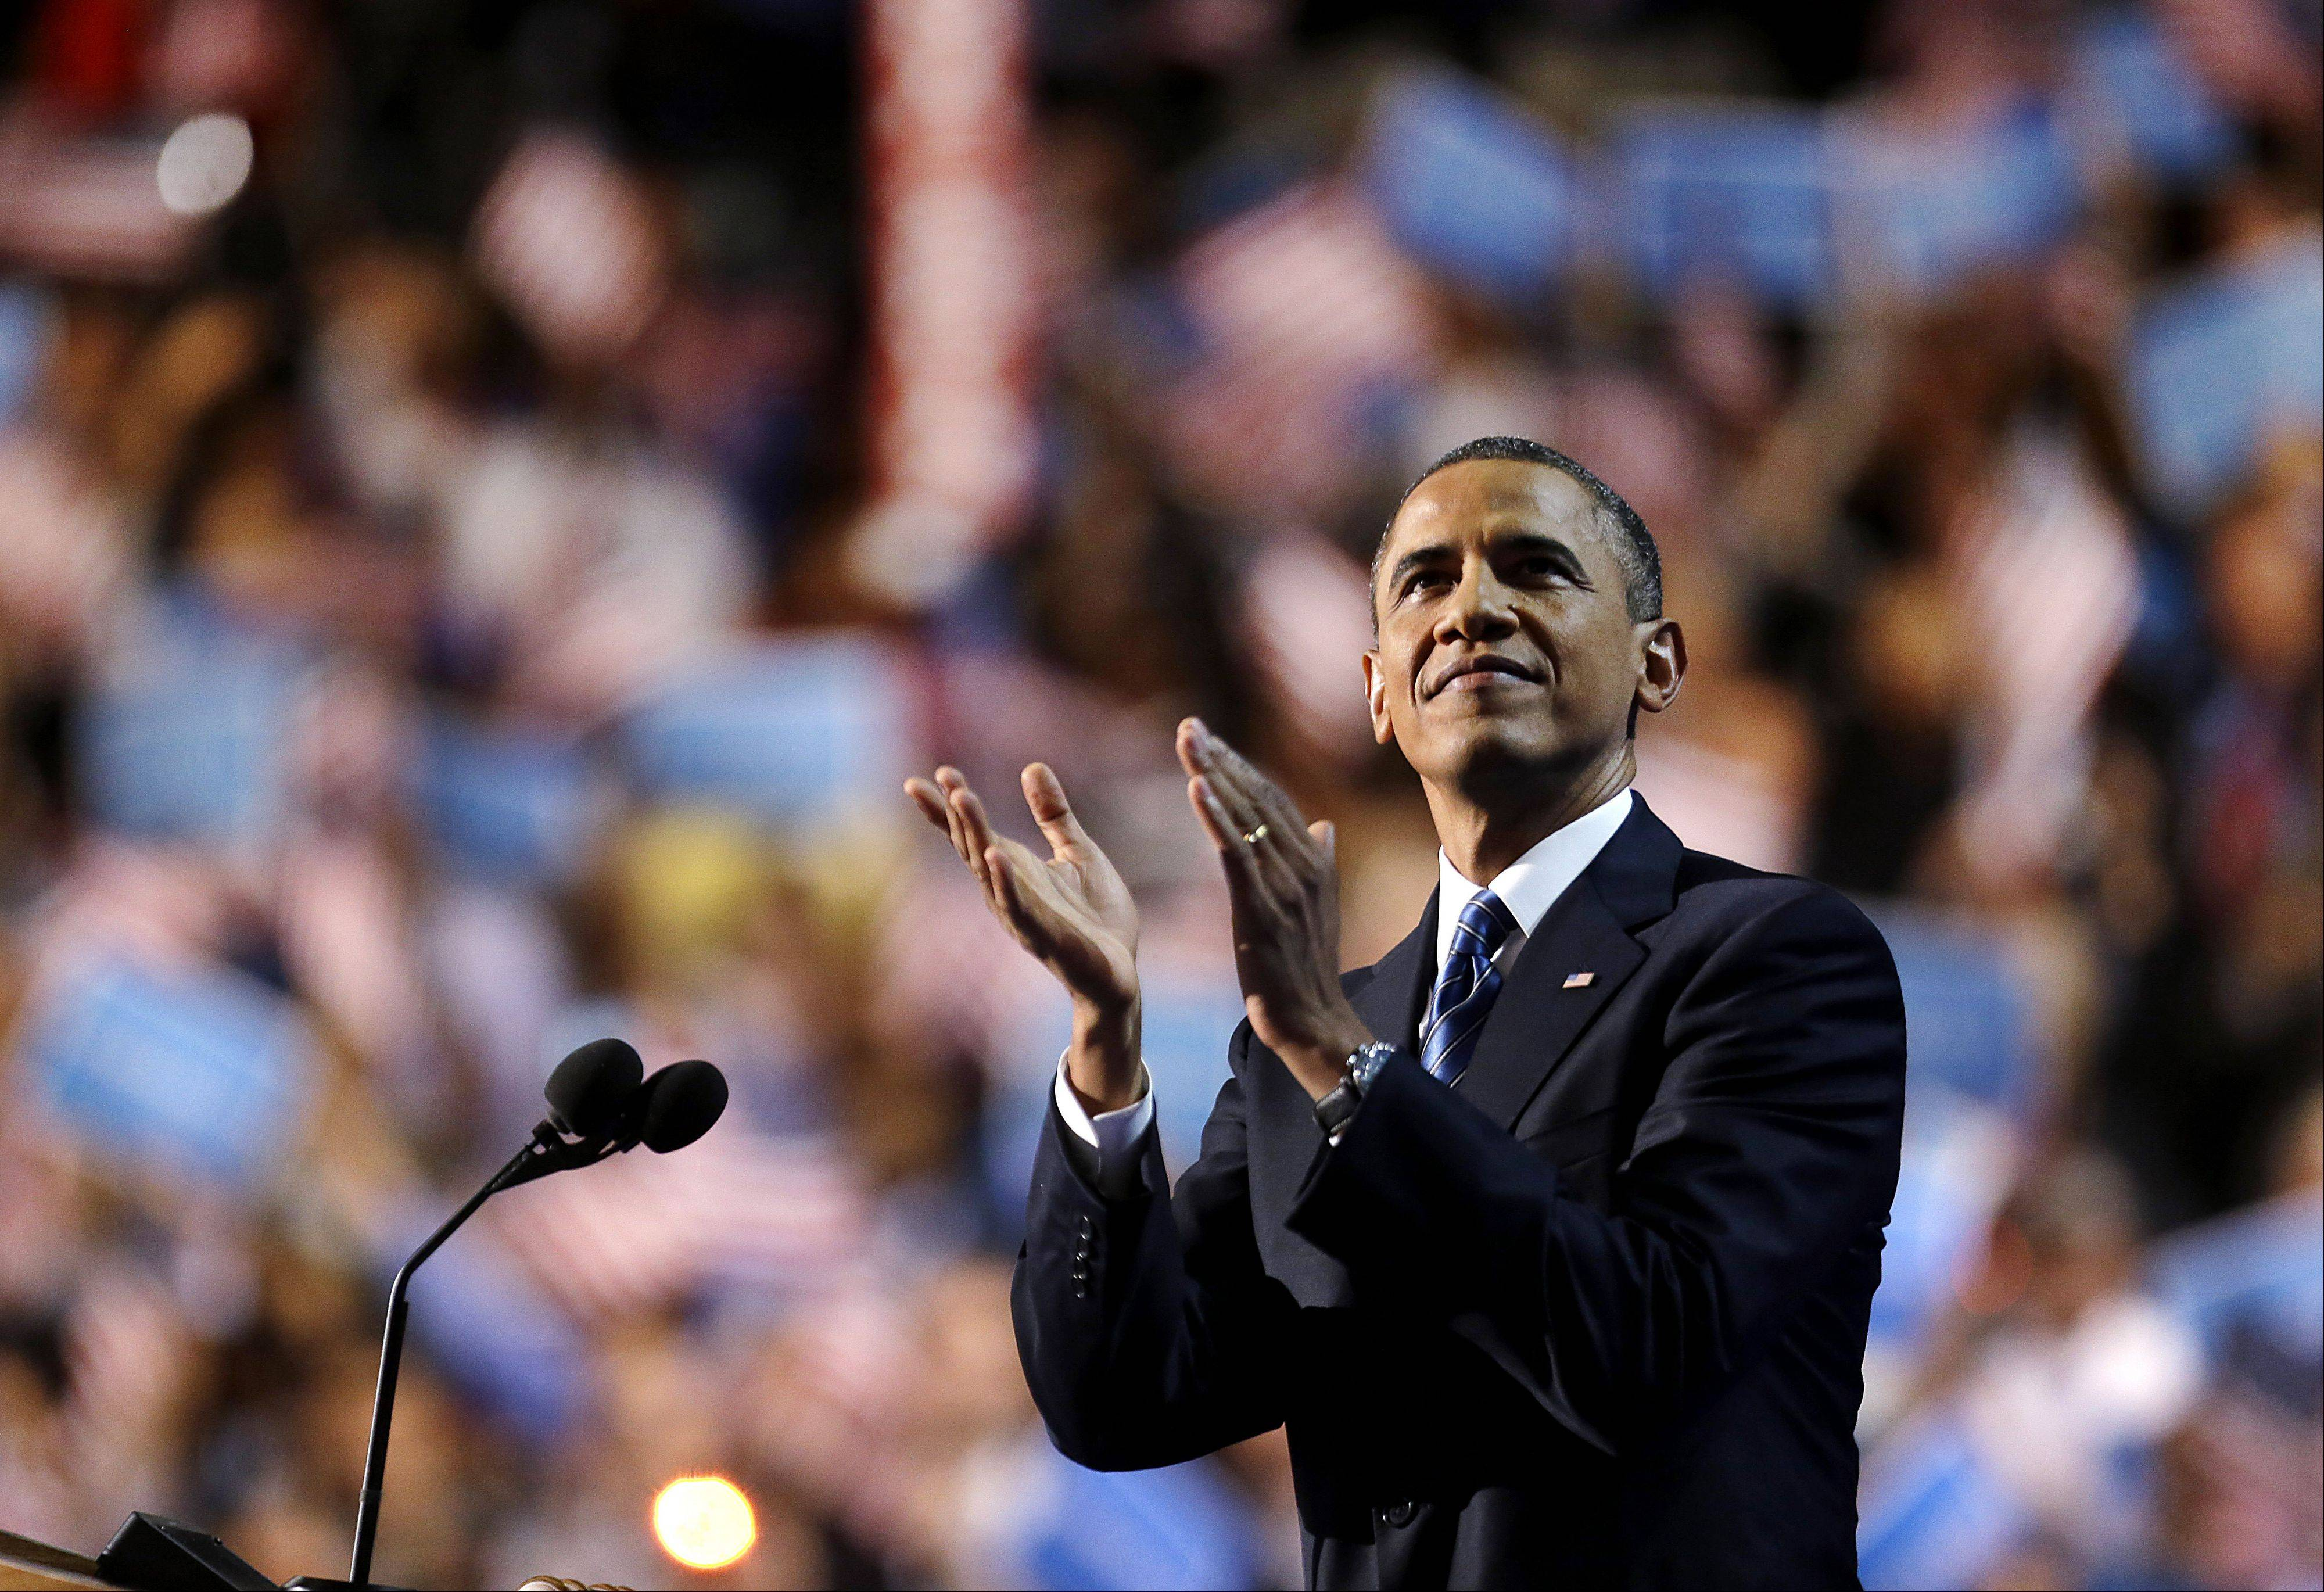 President Barack Obama admires the crowd before his speech to the Democratic National Convention in Charlotte, N.C., on Thursday, Sept. 6, 2012.